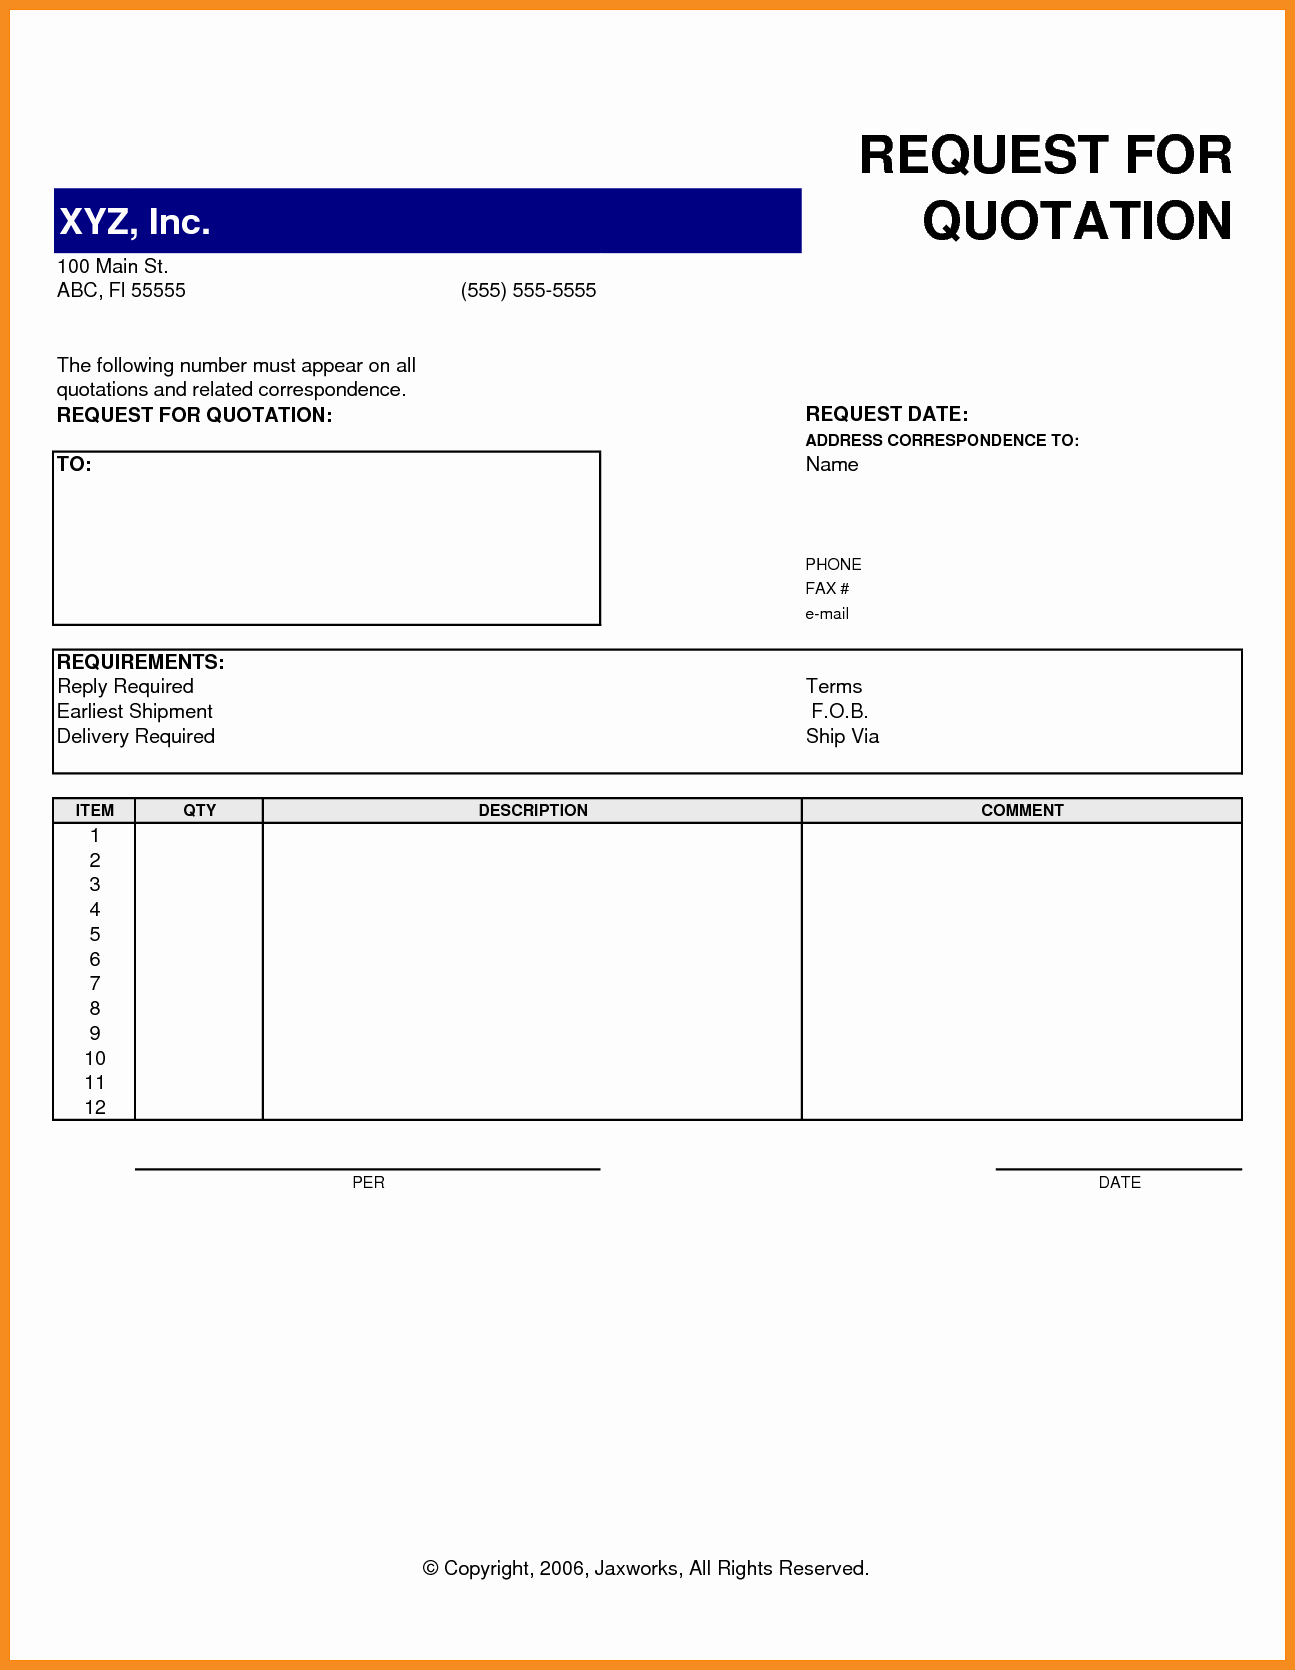 Request for Quote Template Excel Awesome Request for Quote Template